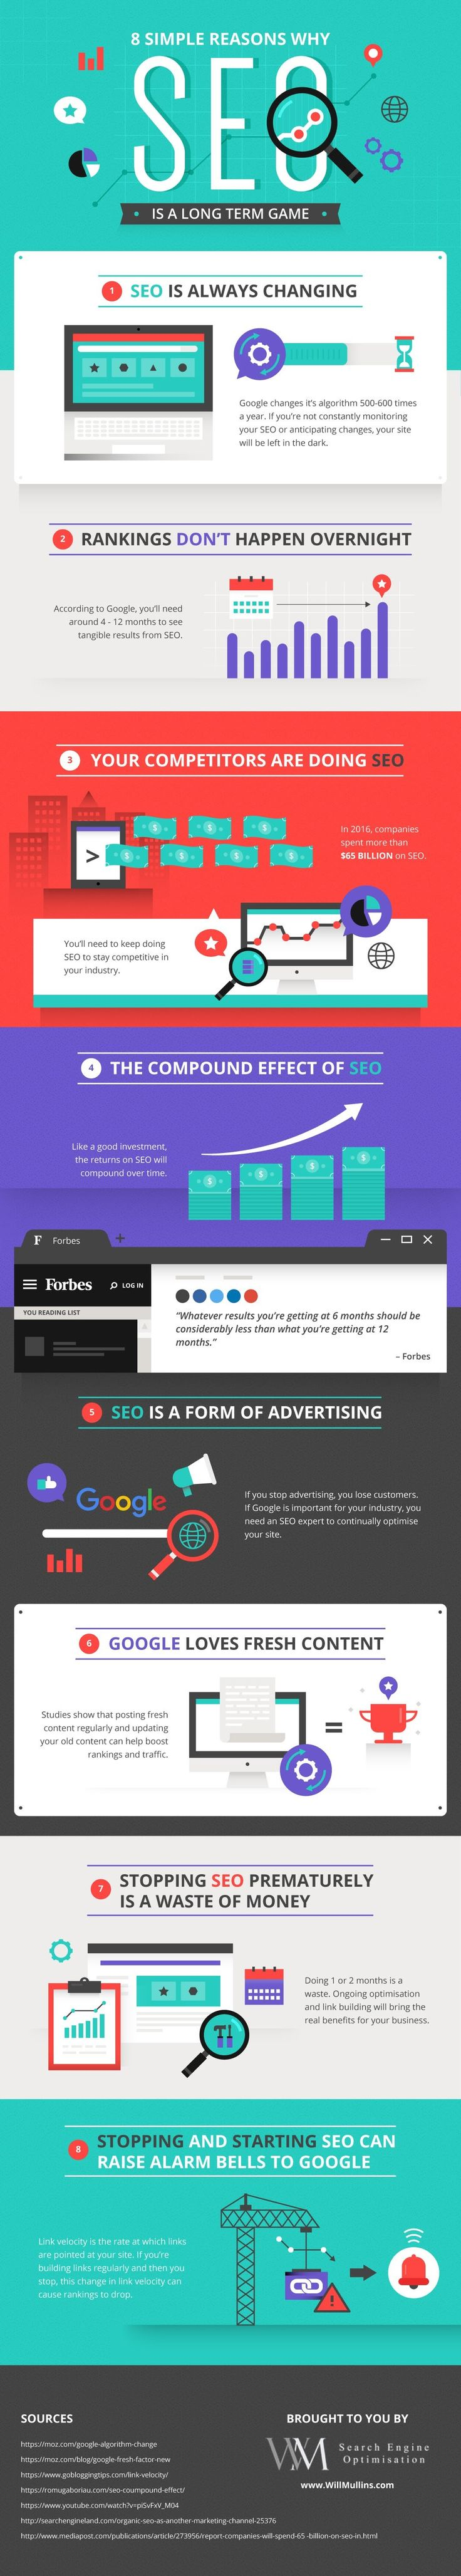 8 Simple Reasons Why SEO Is A Long Term Game - #infographic